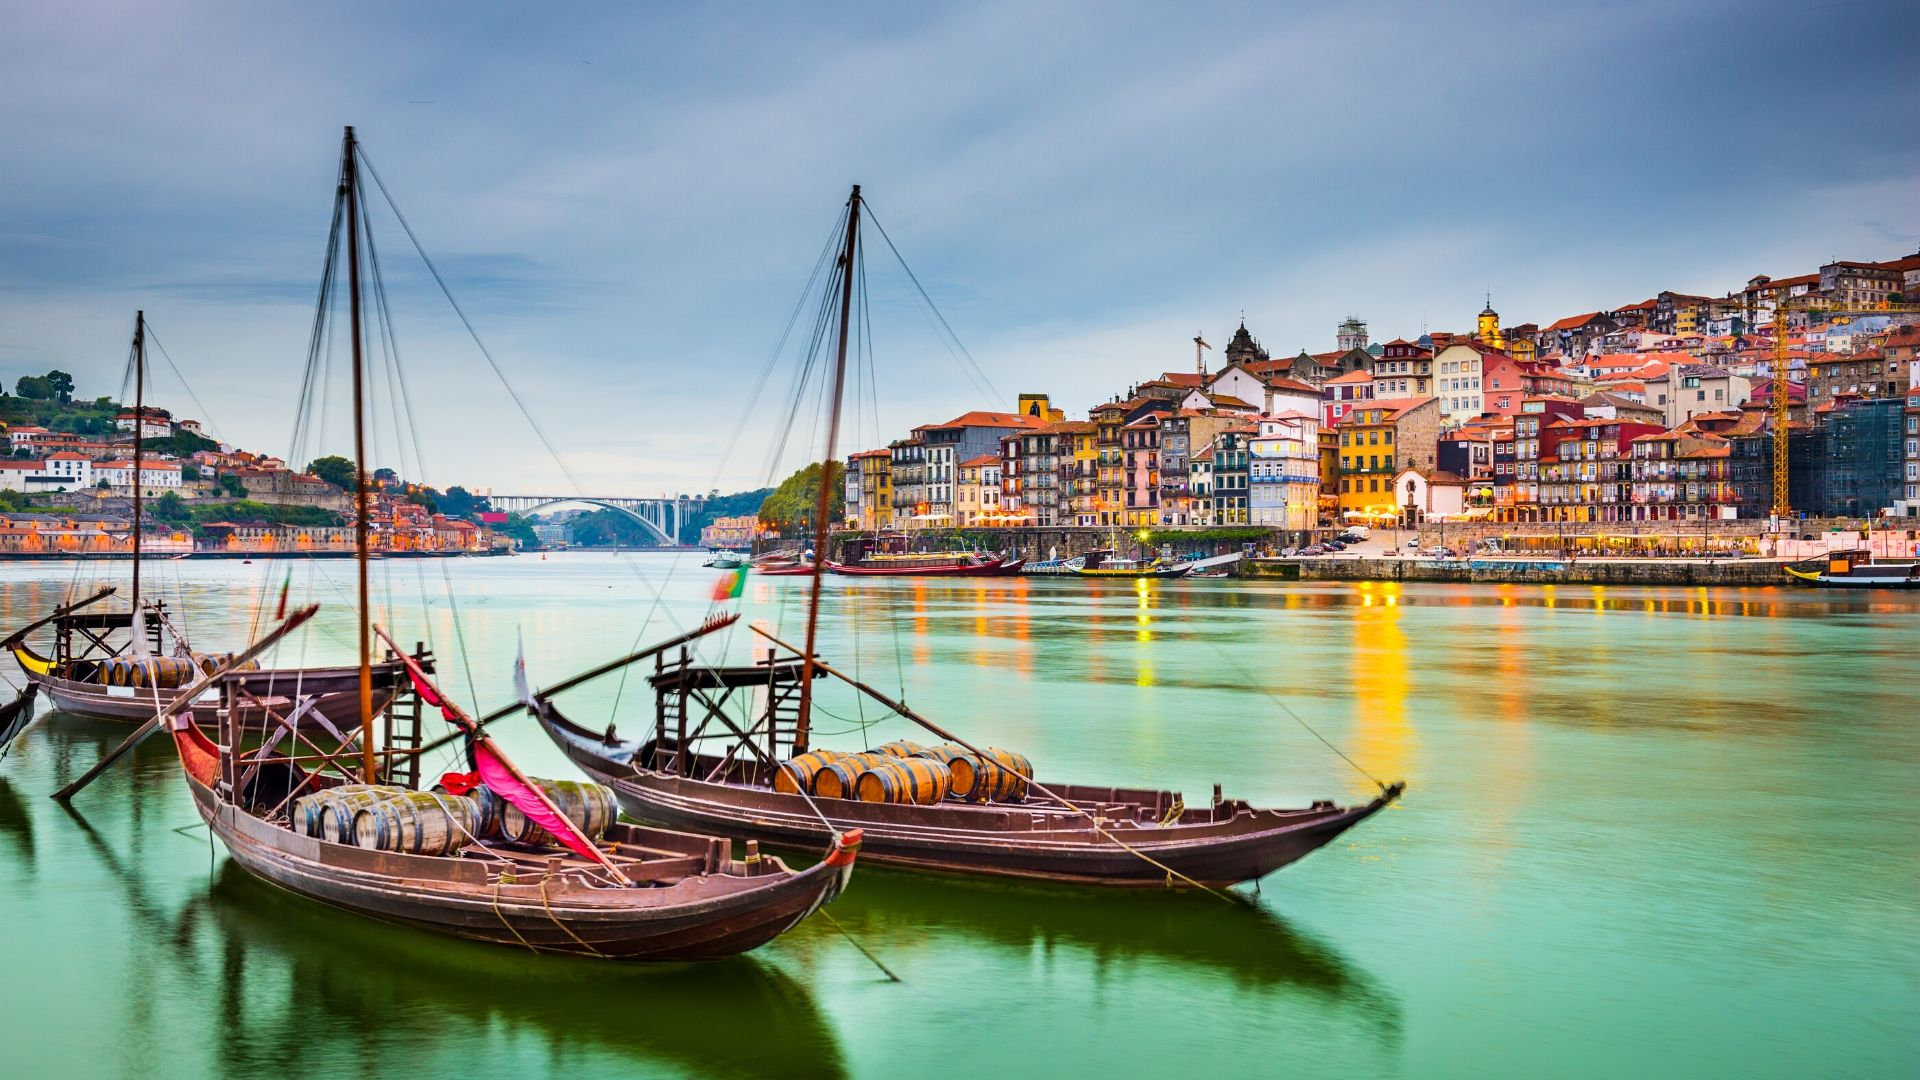 Boats on the Douro in Porto